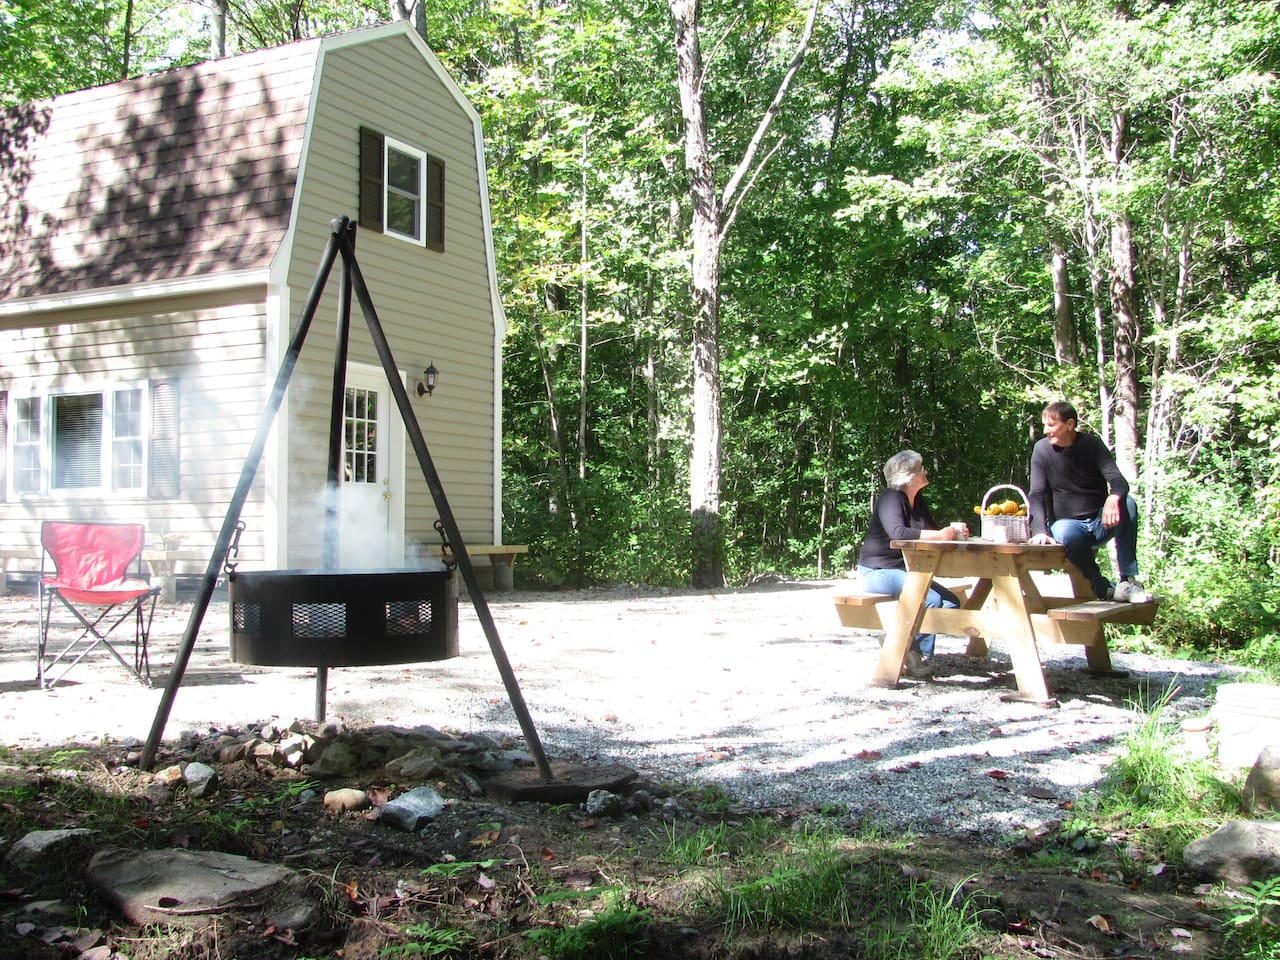 Lodging at Parker's Cottage is saving you money.